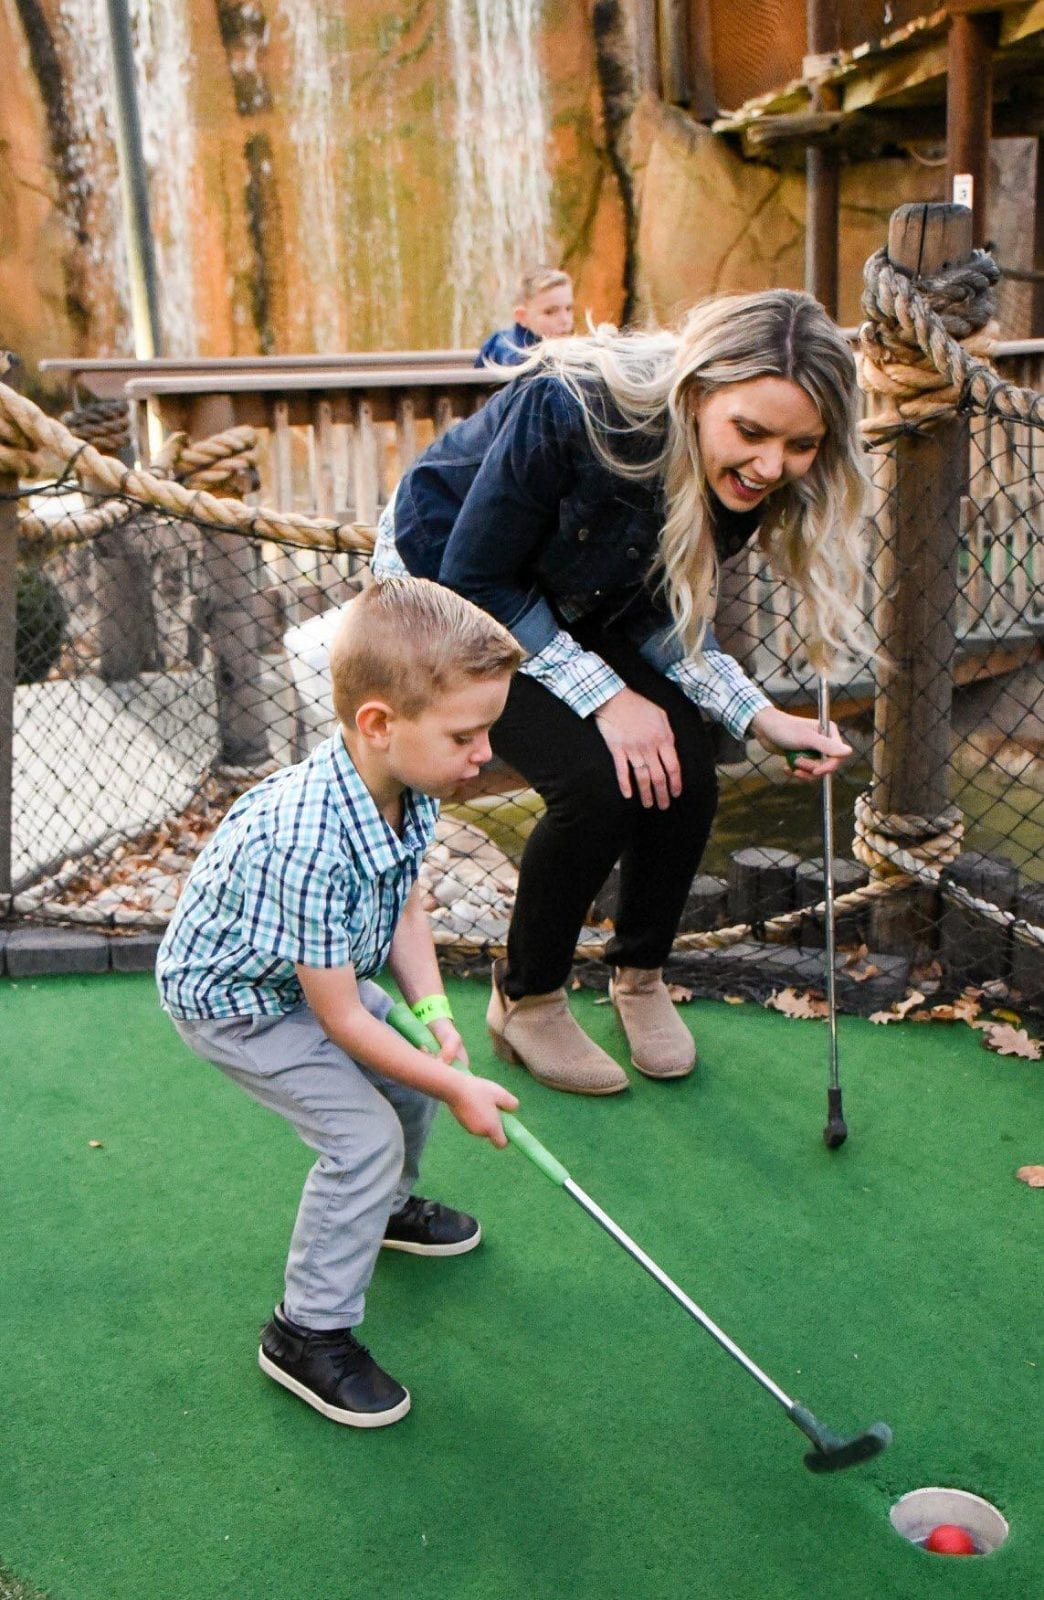 Miniature Golf Courses in Boondocks Fun Center, CO